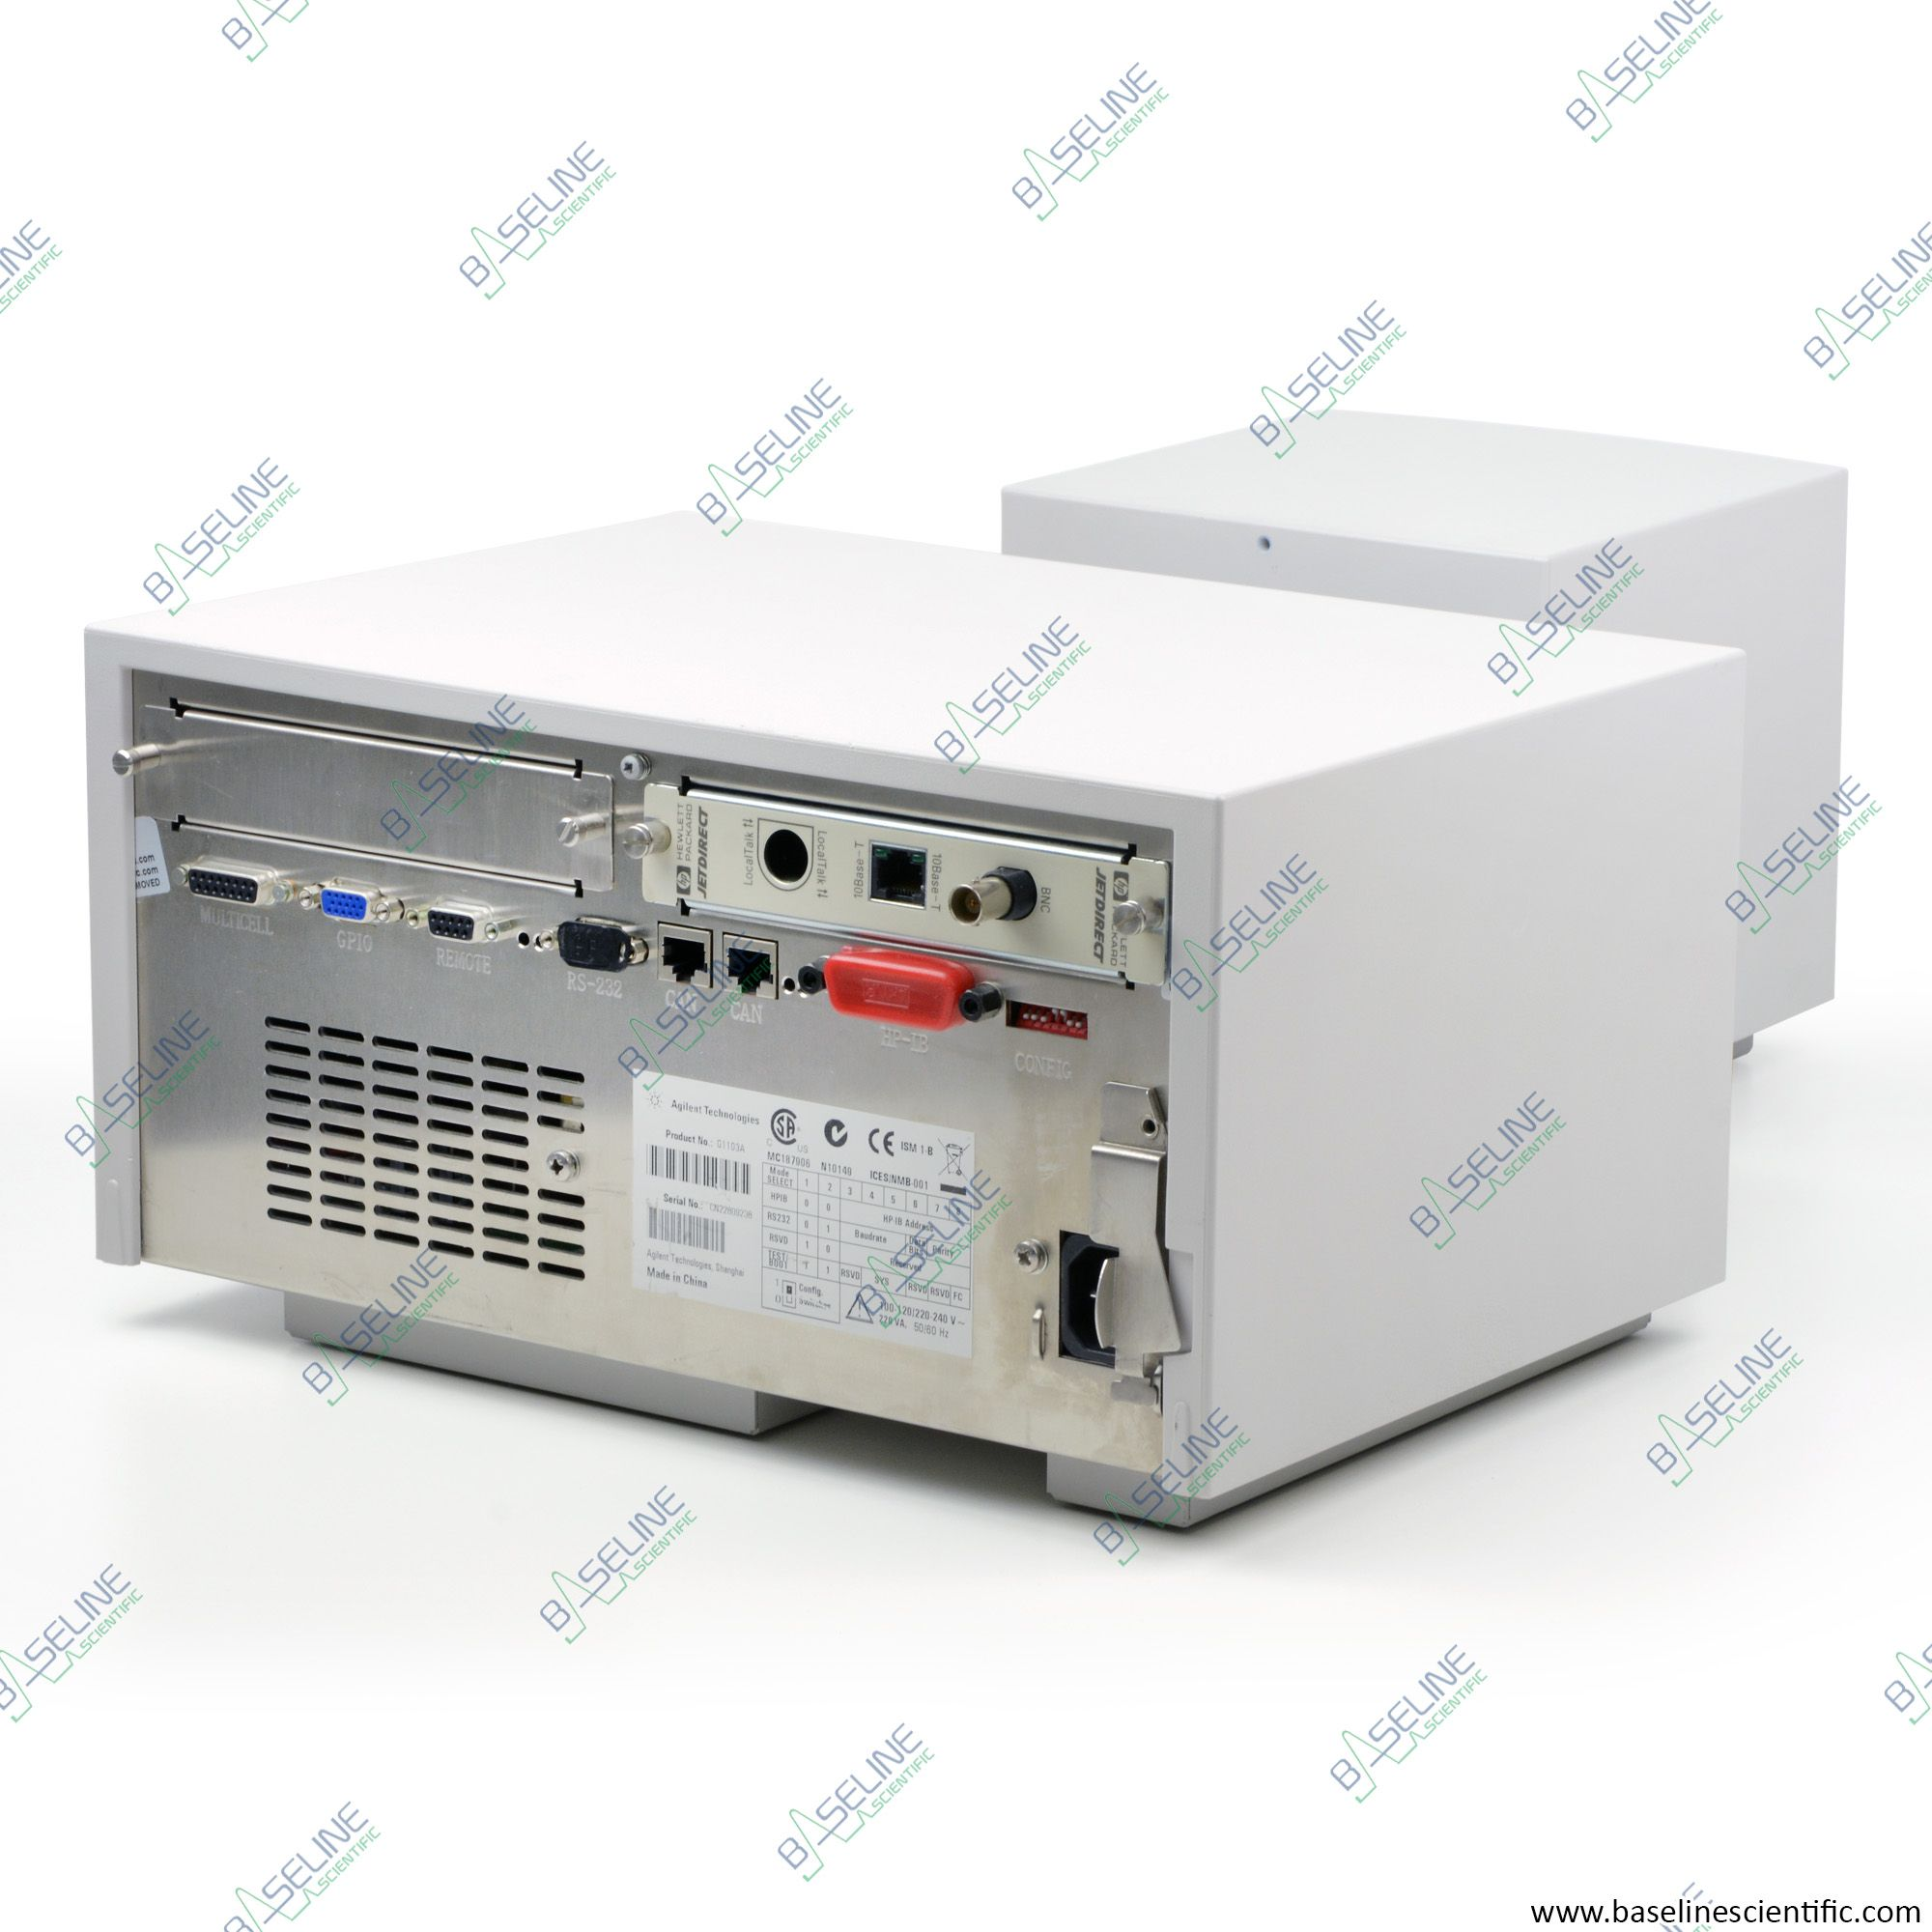 Refurbished Agilent HP 8453 G1103A Spectrophotometer with Chemstation B.04.01 and ONE YEAR WARRANTY